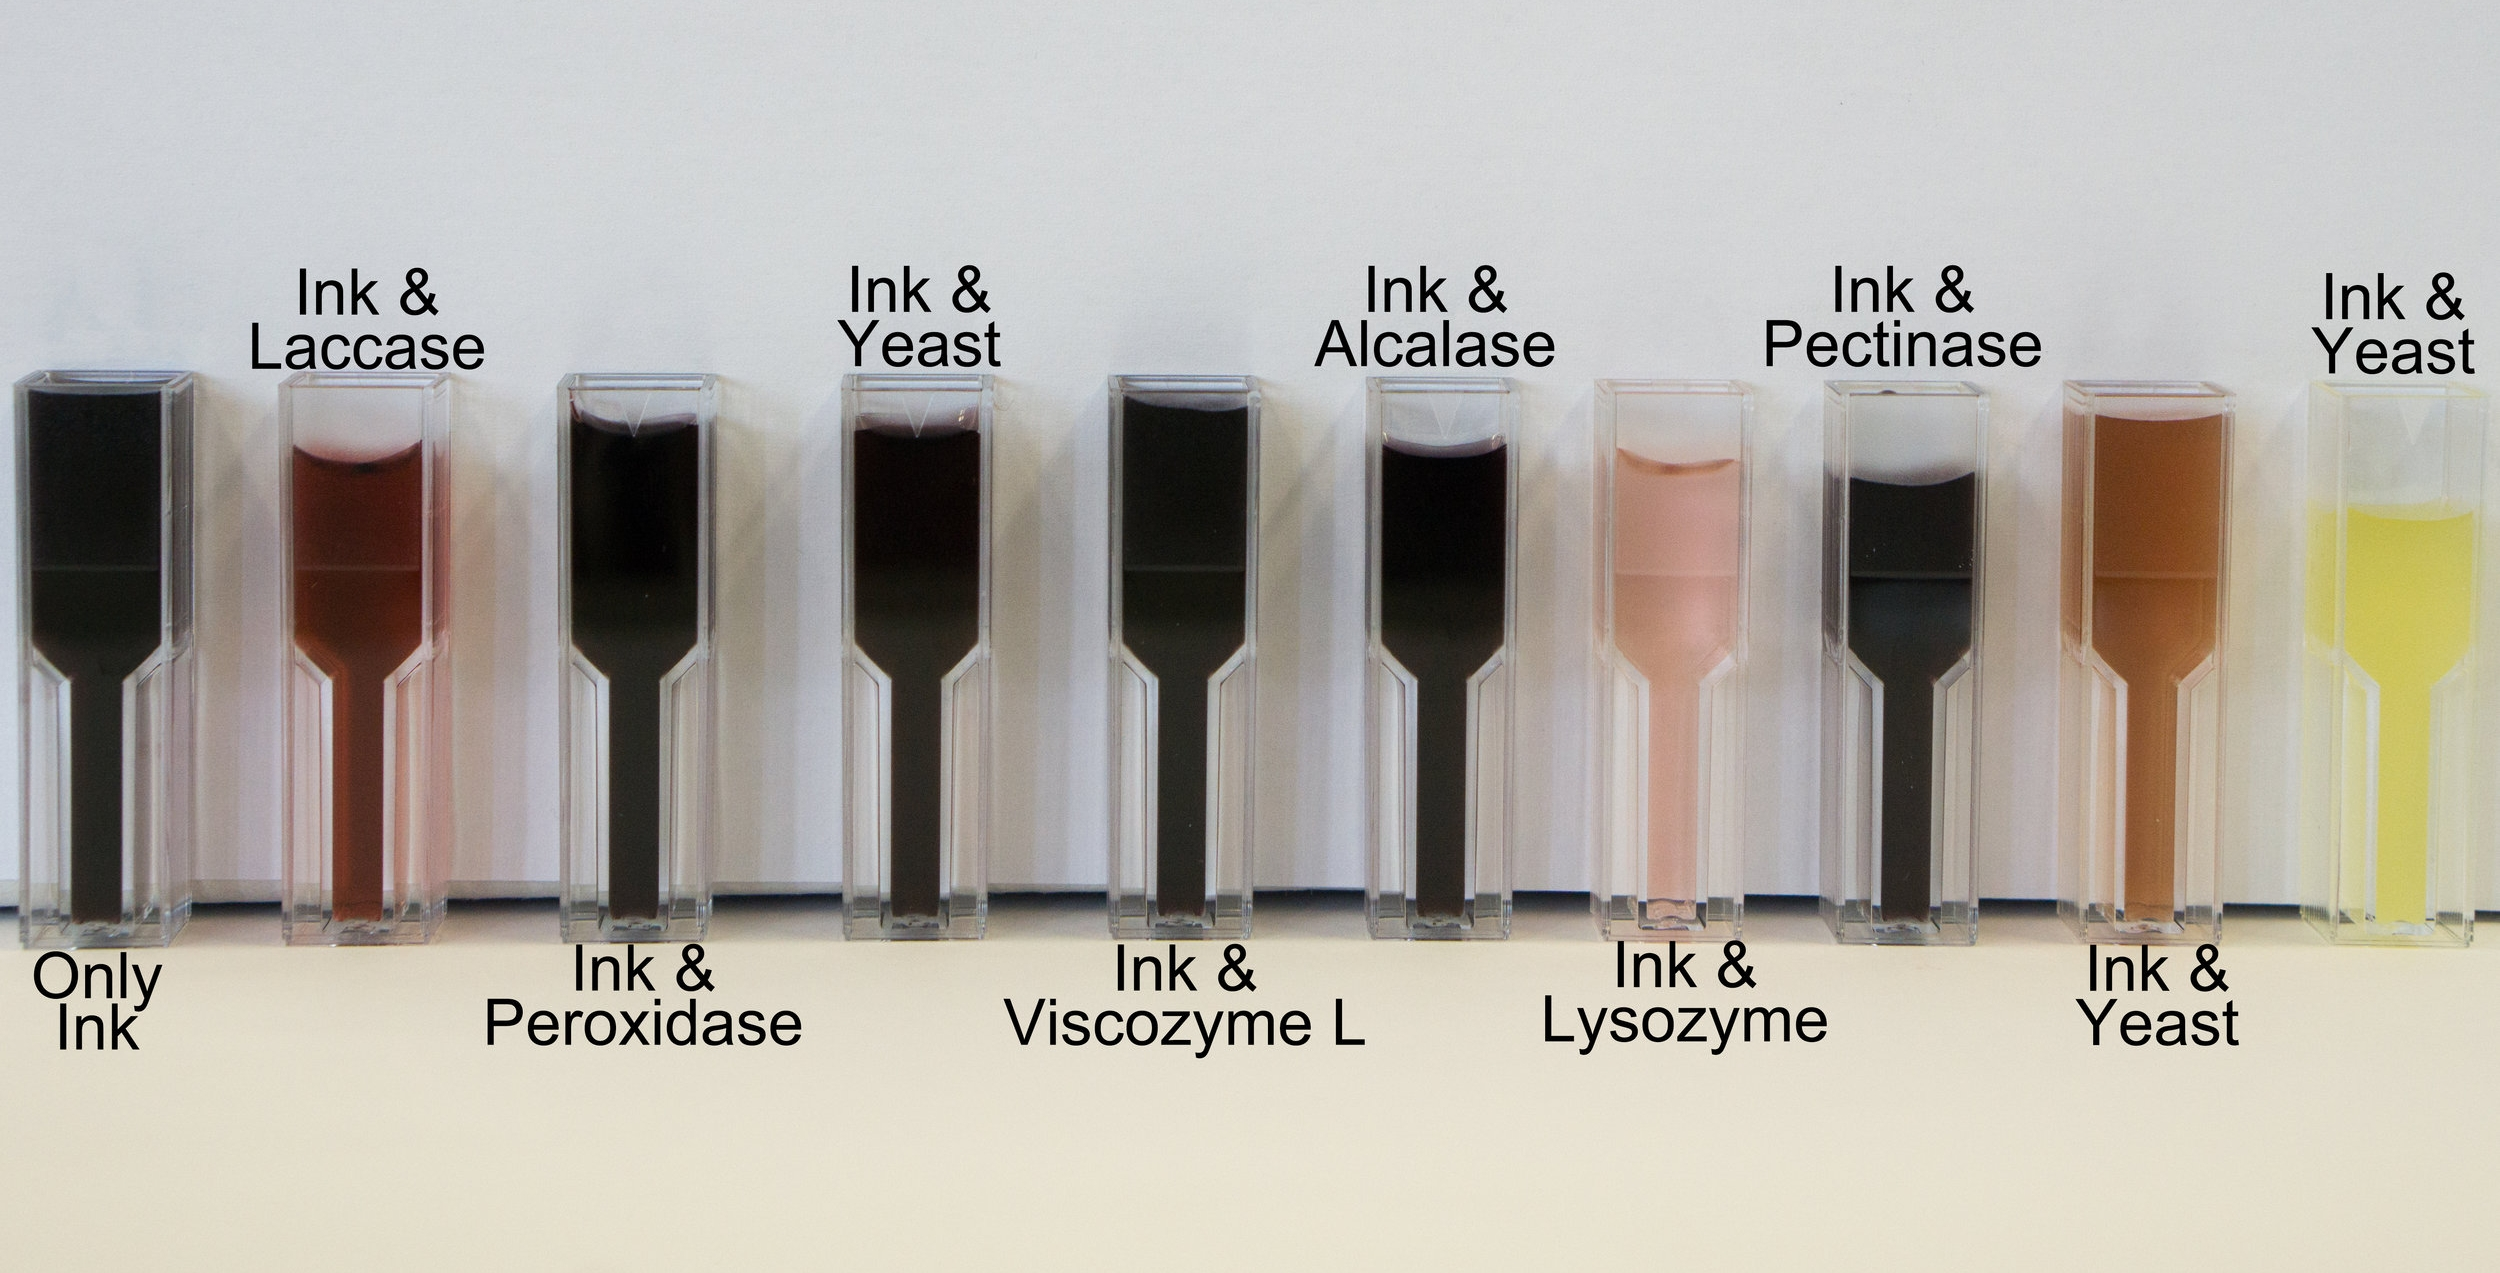 Ink samples with laccase, lysozyme and yeasts mixtures showed obvious decolourisation results.